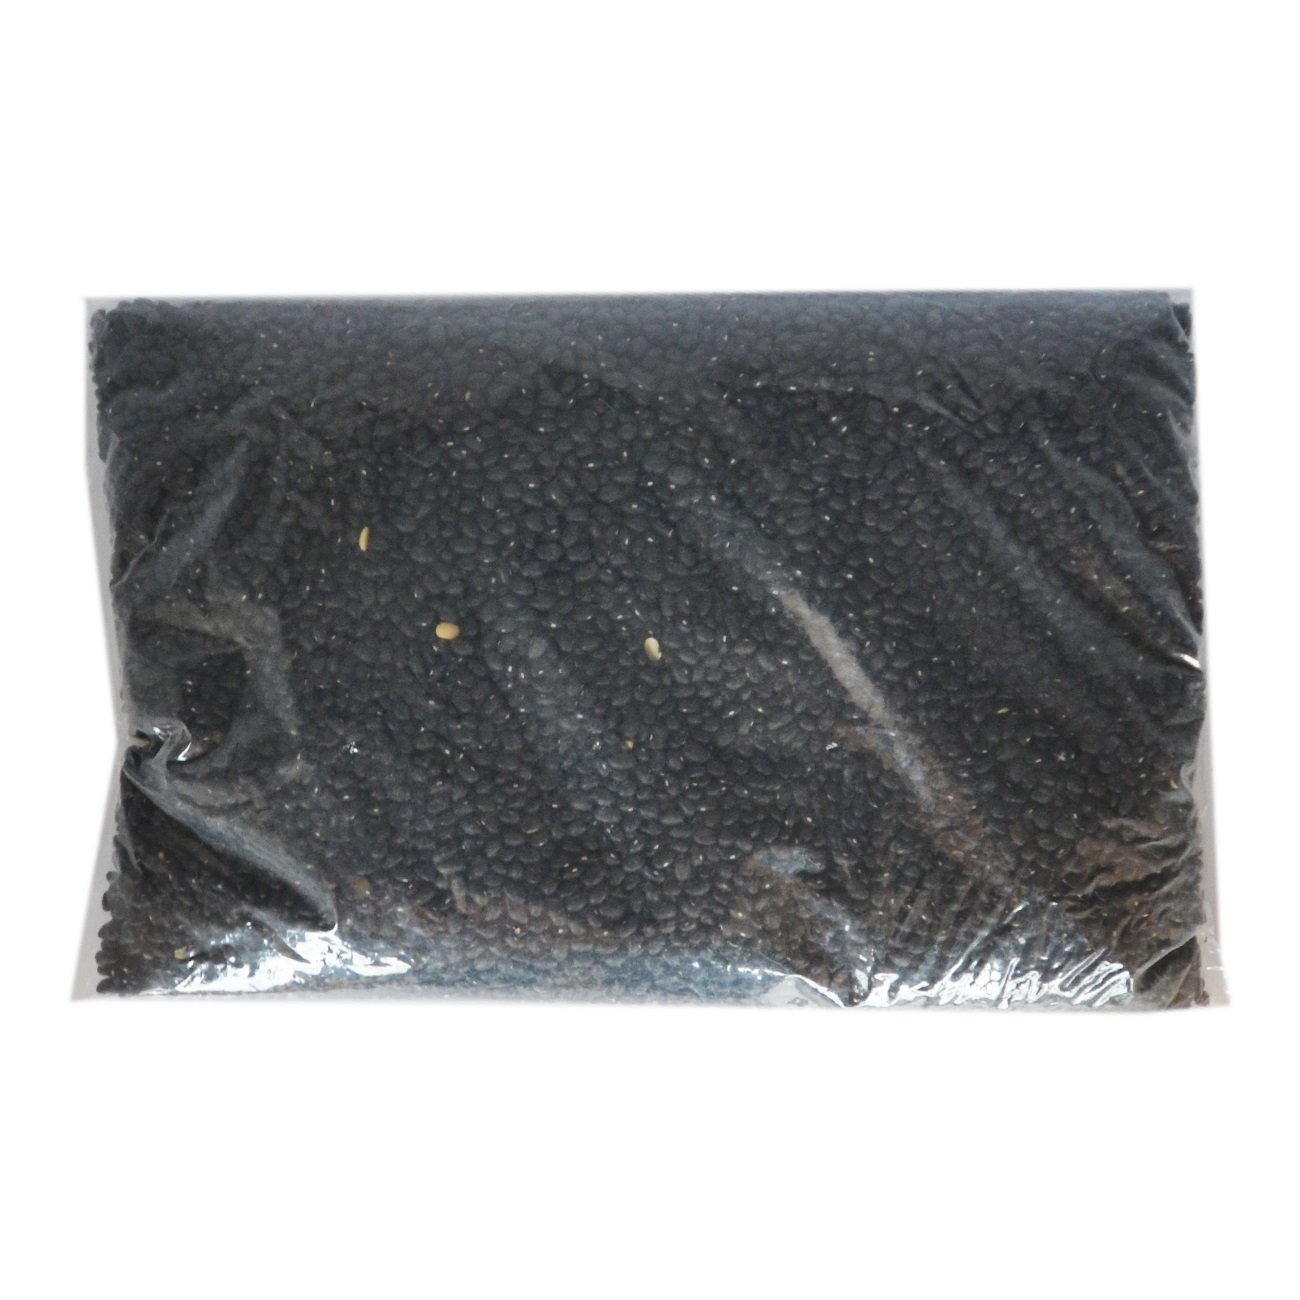 Classic Provisions Dried Black Turtle Beans, 10 Pound by Classic Provisions